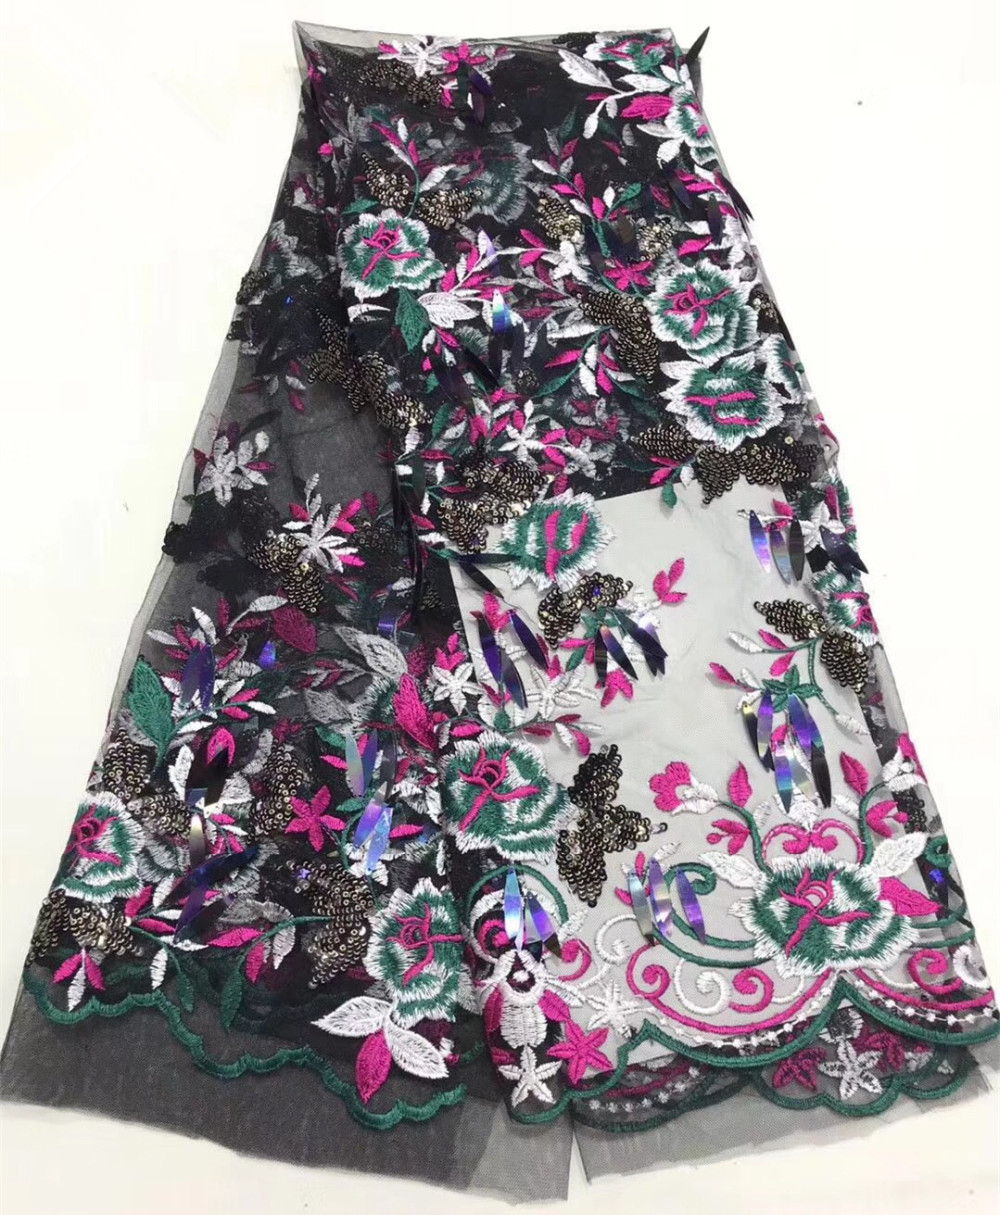 Wholesale embroidery sequins lace fabric, African lace fabric quality Nigerian lace fabricWholesale embroidery sequins lace fabric, African lace fabric quality Nigerian lace fabric